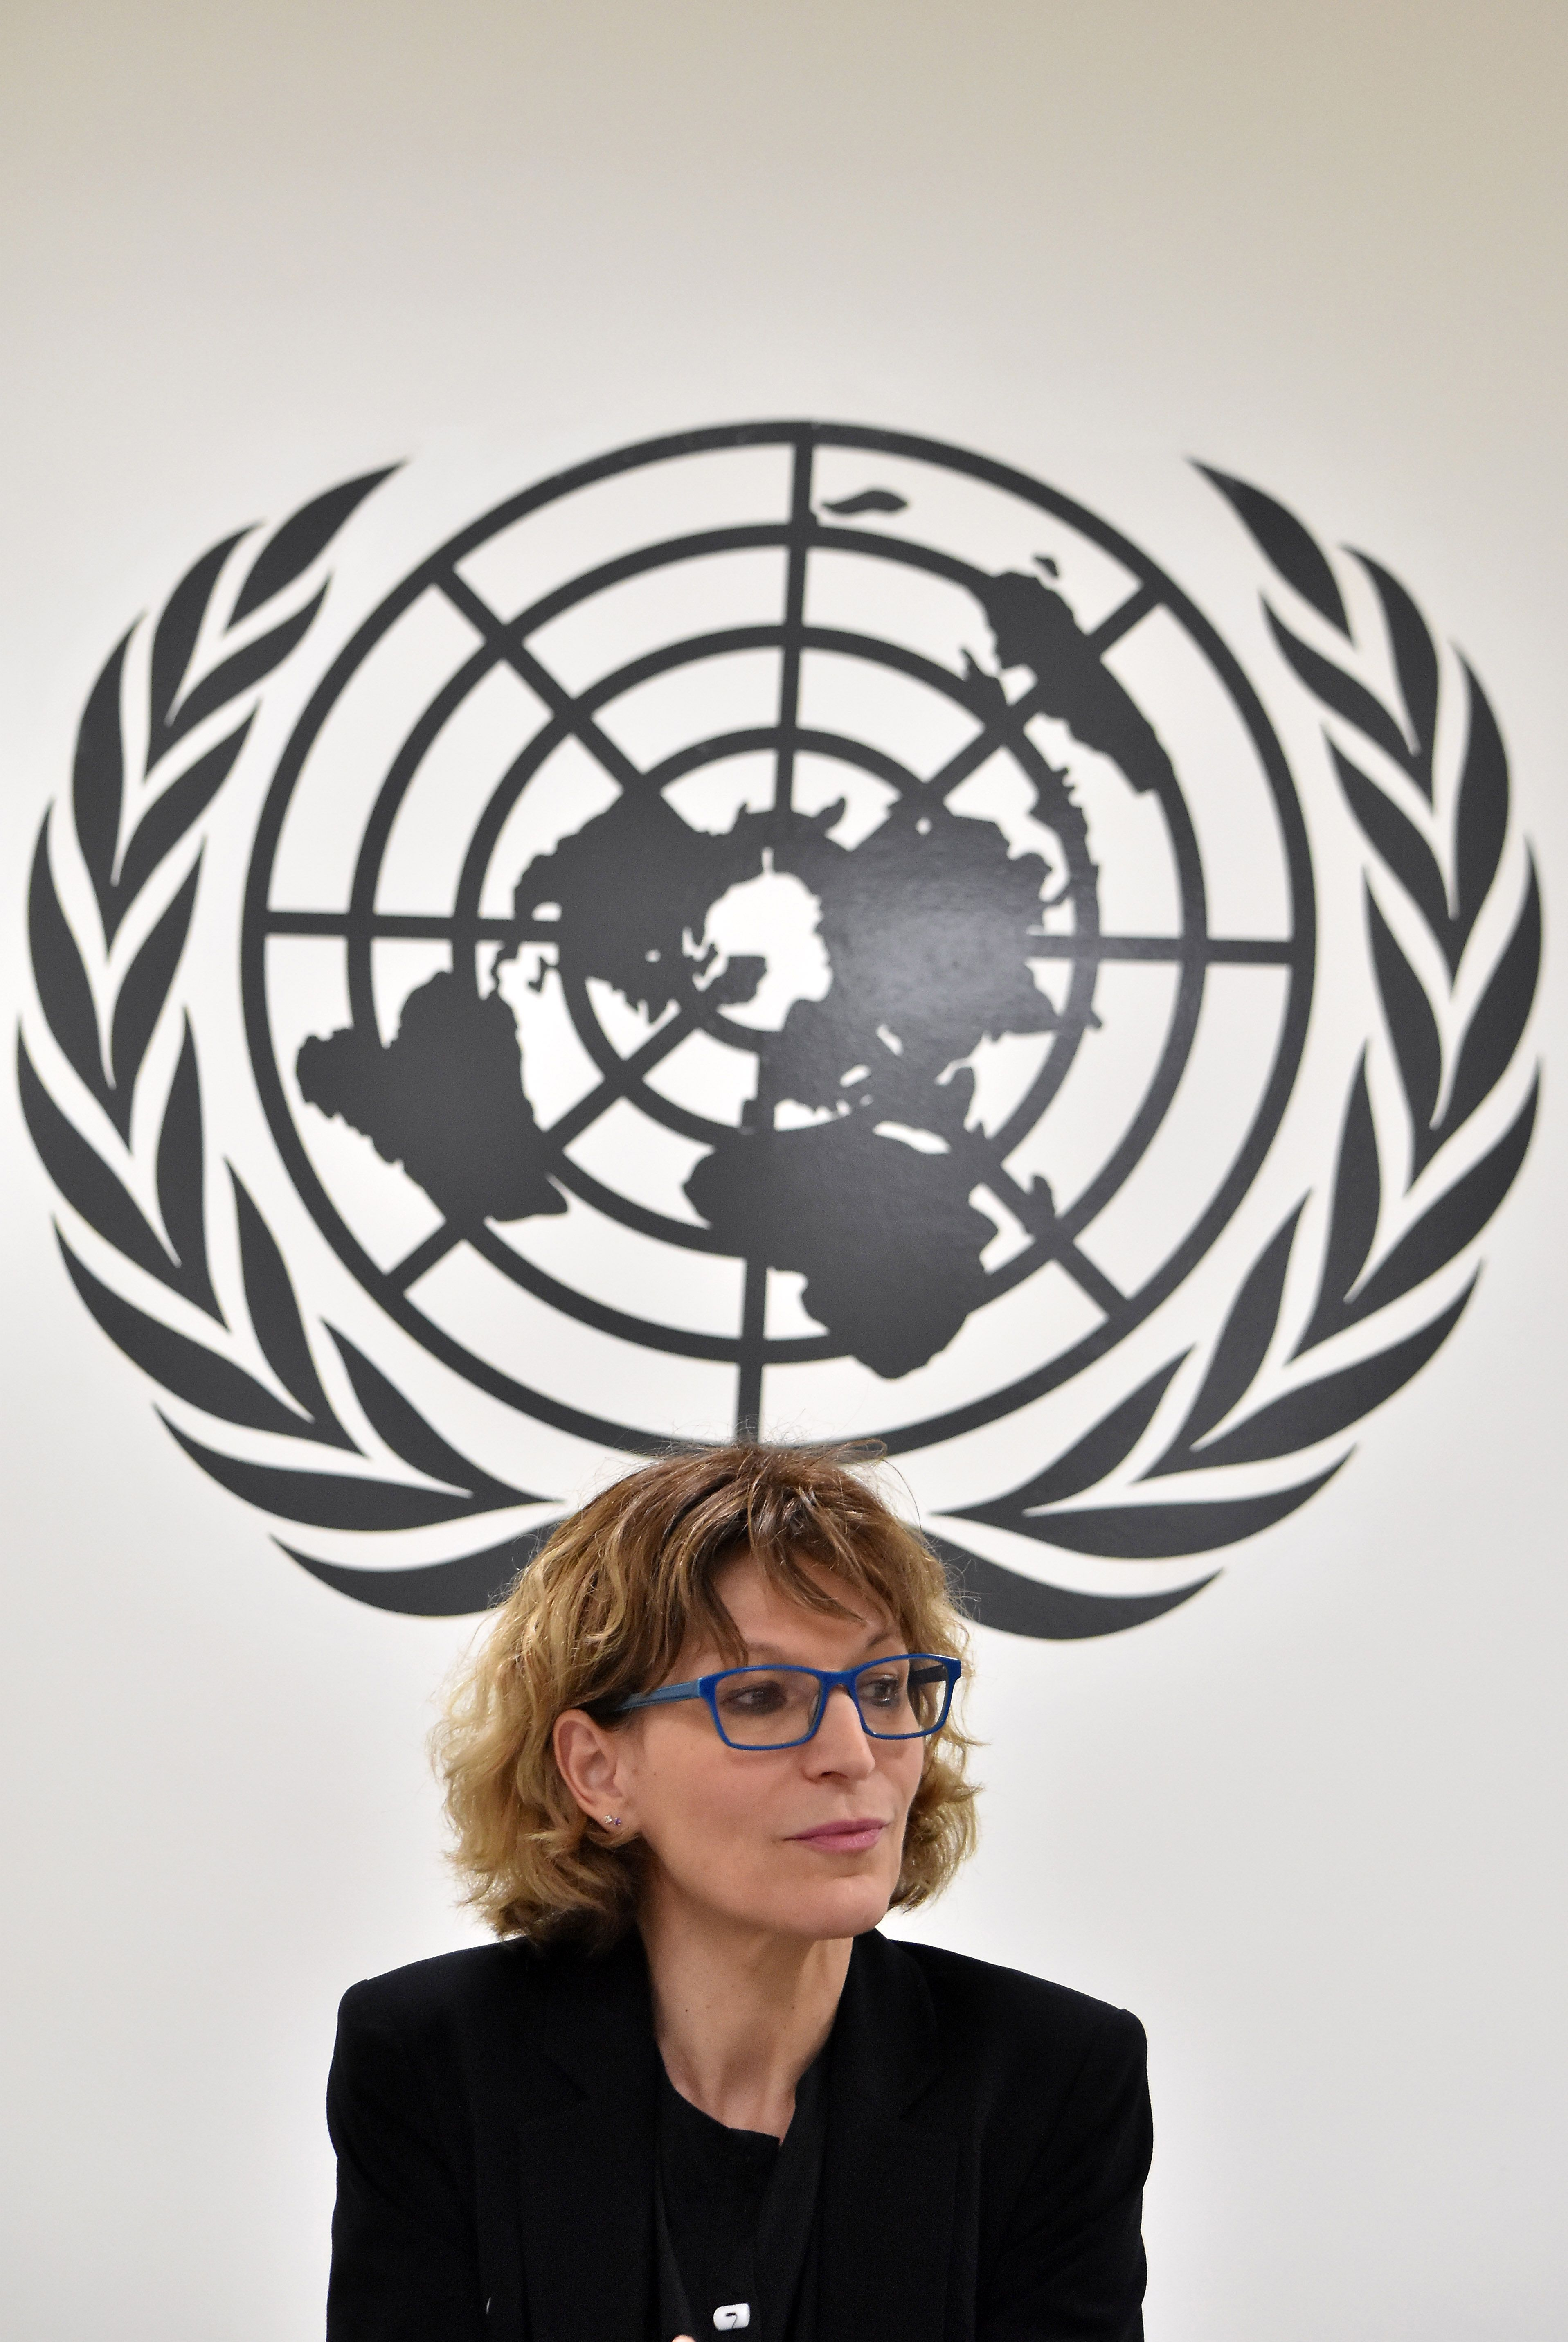 Agnes Callamard, the UN special rapporteur on extrajudicial killings, speaks during a press conference in San Salvador on February 5, 2018. (MARVIN RECINOS/AFP/Getty Images)